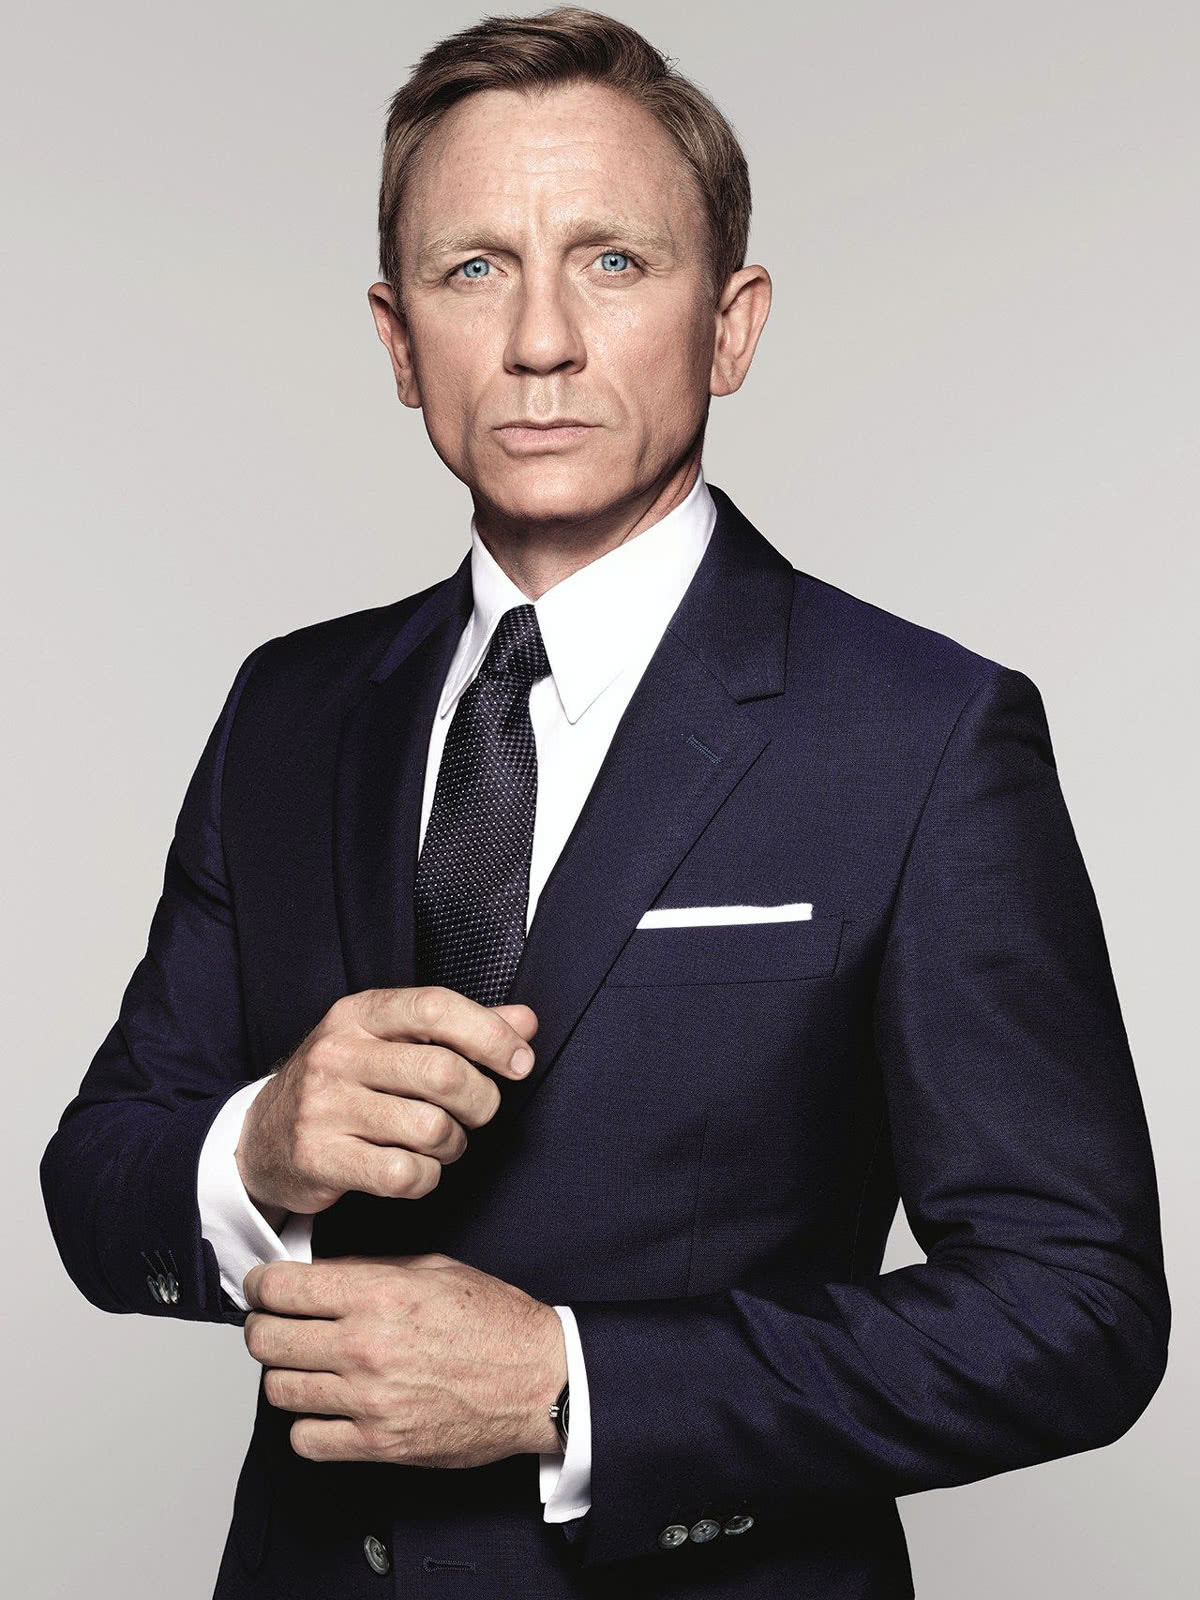 business professional dress code men James Bond suit style - Luxe Digital